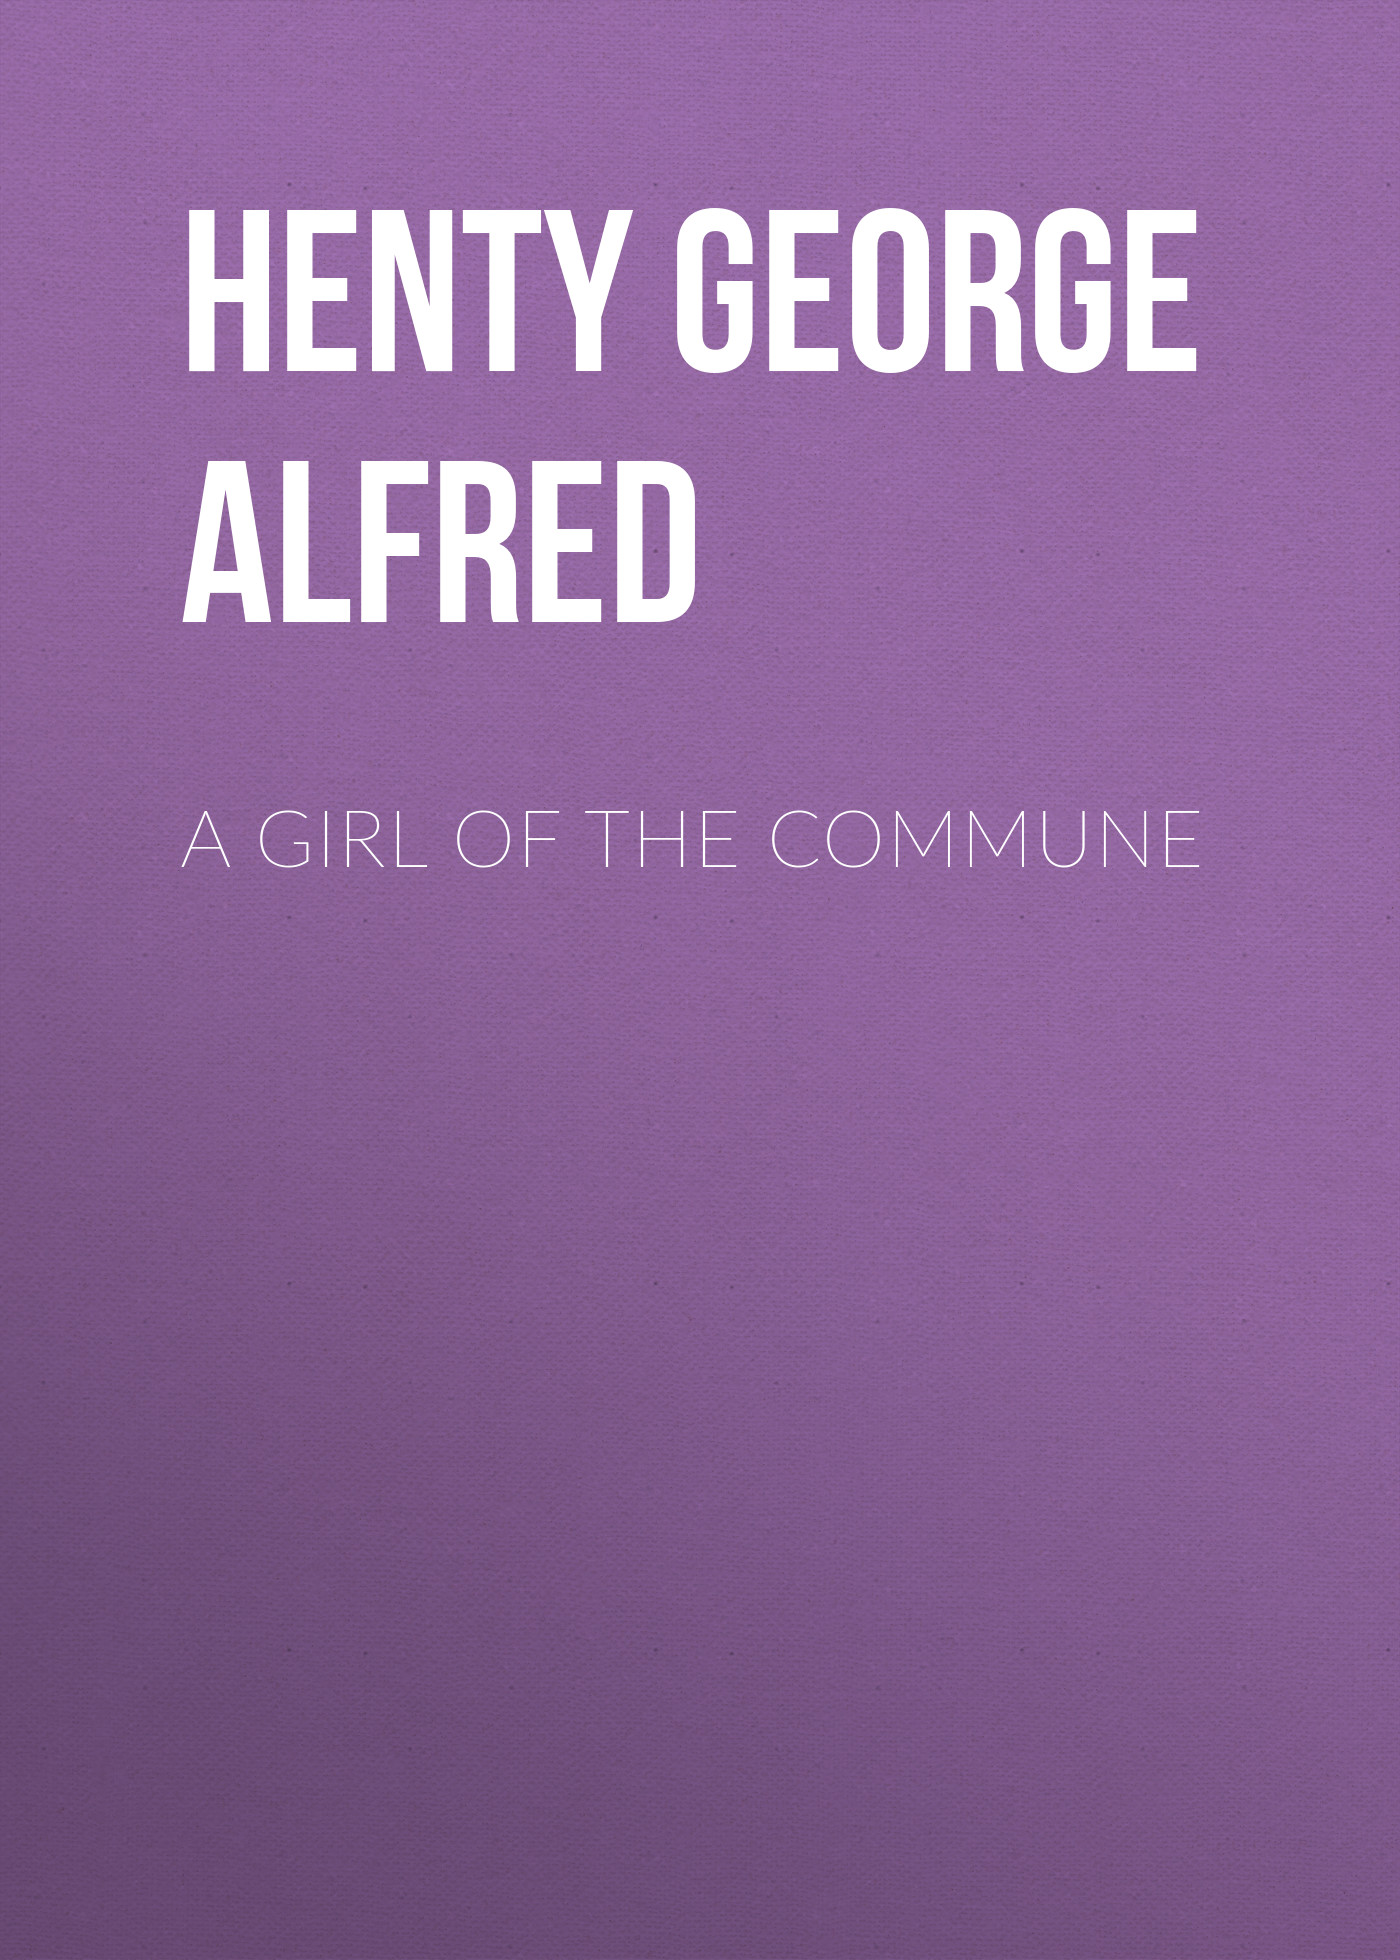 Henty George Alfred A Girl of the Commune